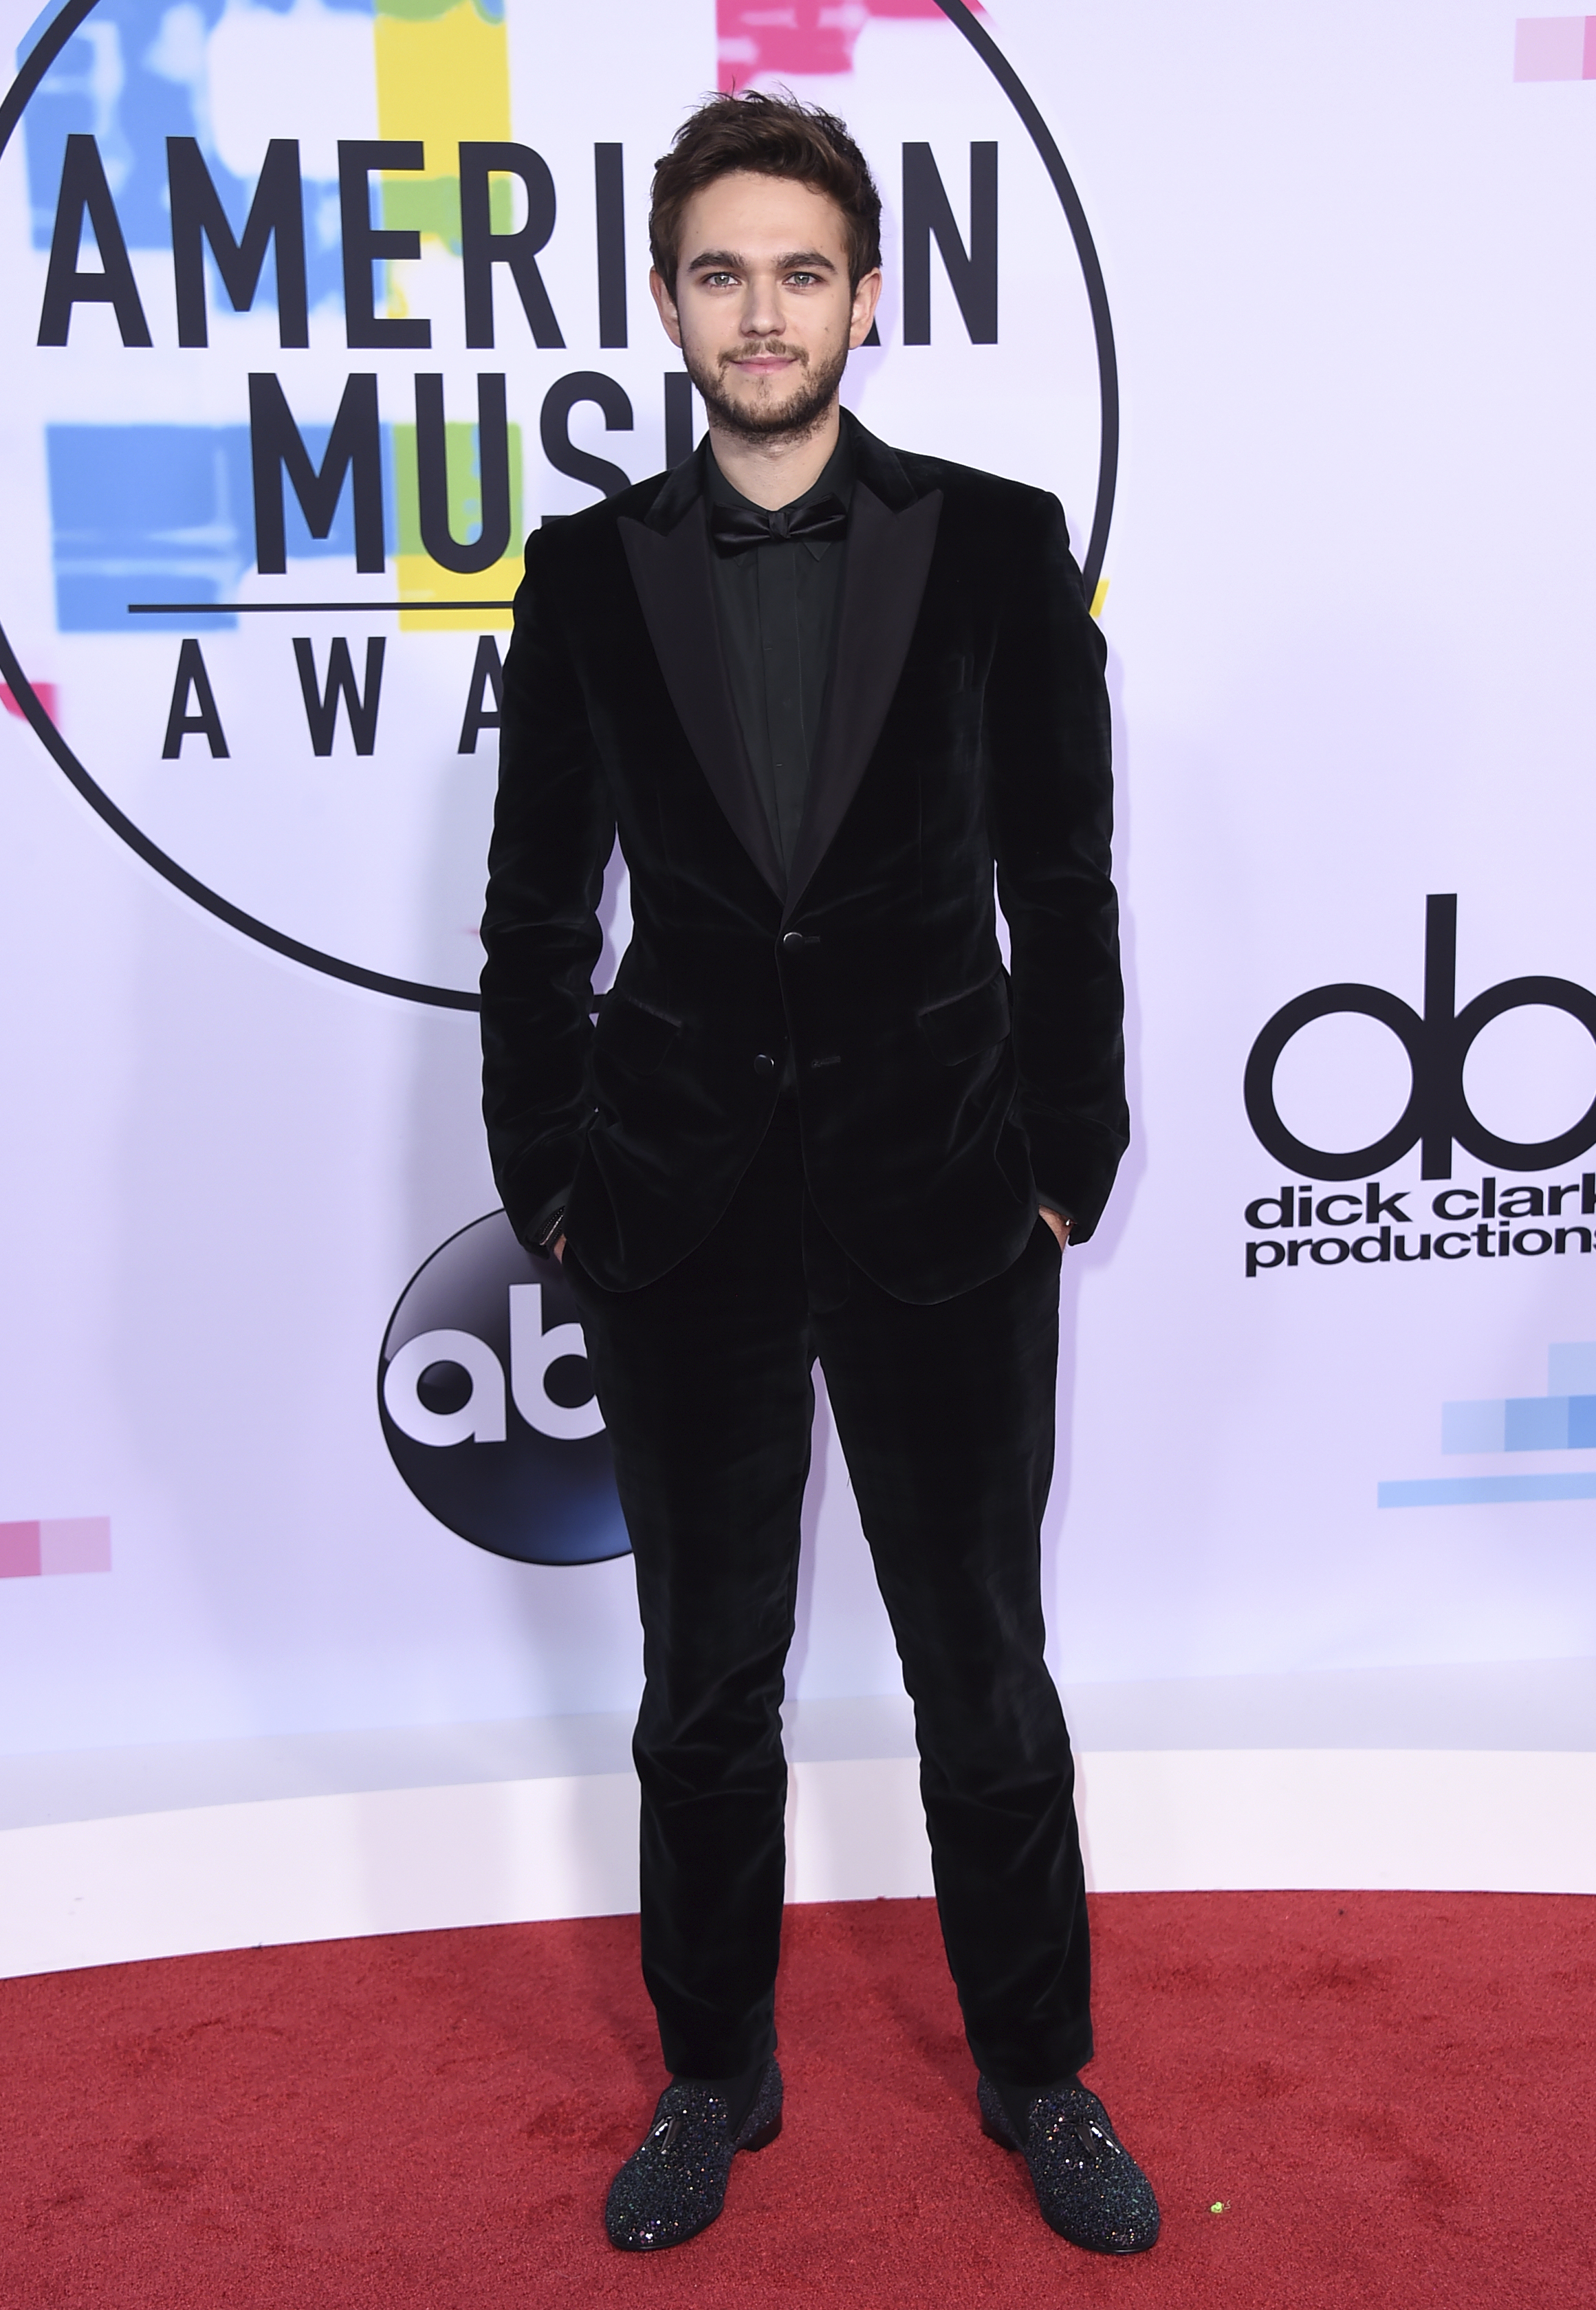 <div class='meta'><div class='origin-logo' data-origin='none'></div><span class='caption-text' data-credit='Jordan Strauss/Invision/AP'>Zedd arrives at the American Music Awards at the Microsoft Theater on Sunday, Nov. 19, 2017, in Los Angeles.</span></div>